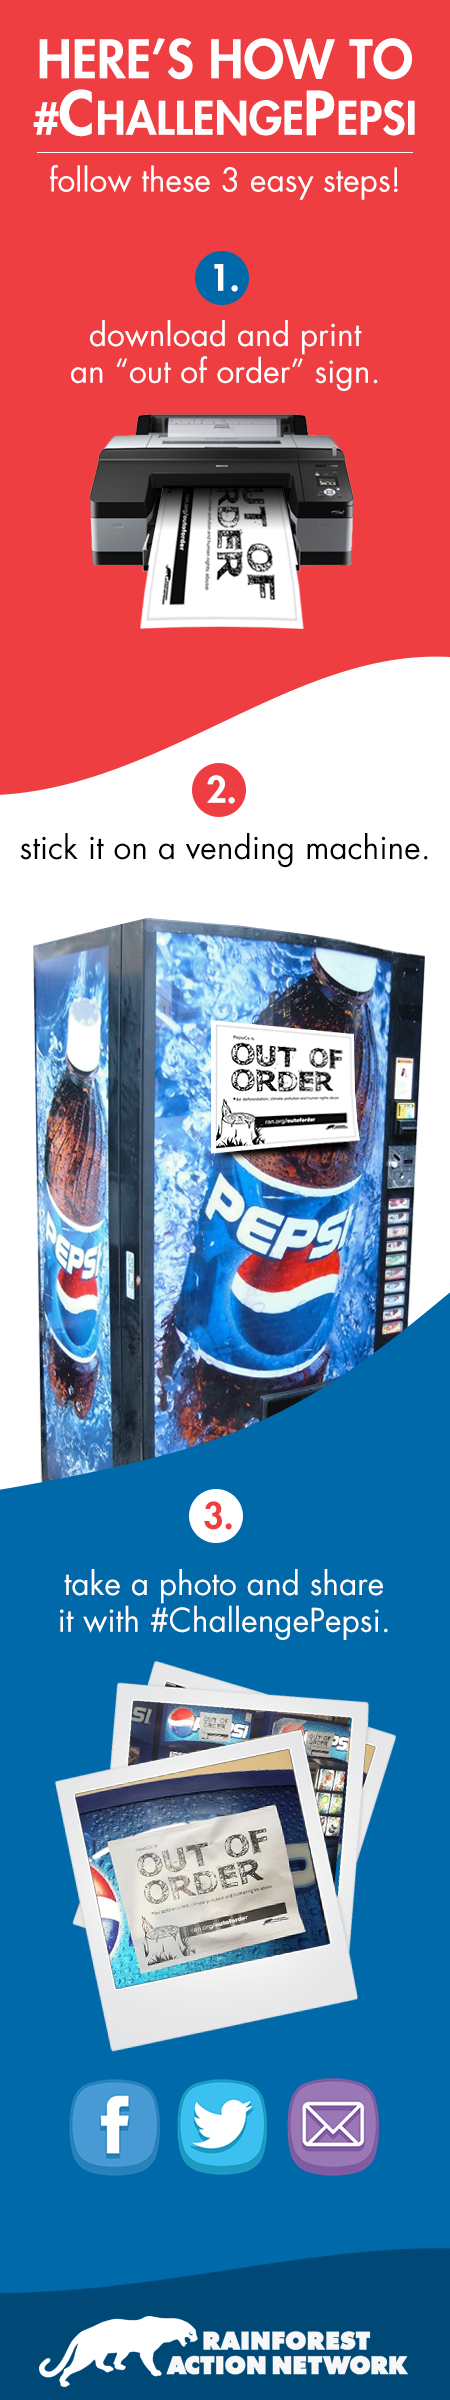 Pepsi_infographic.png